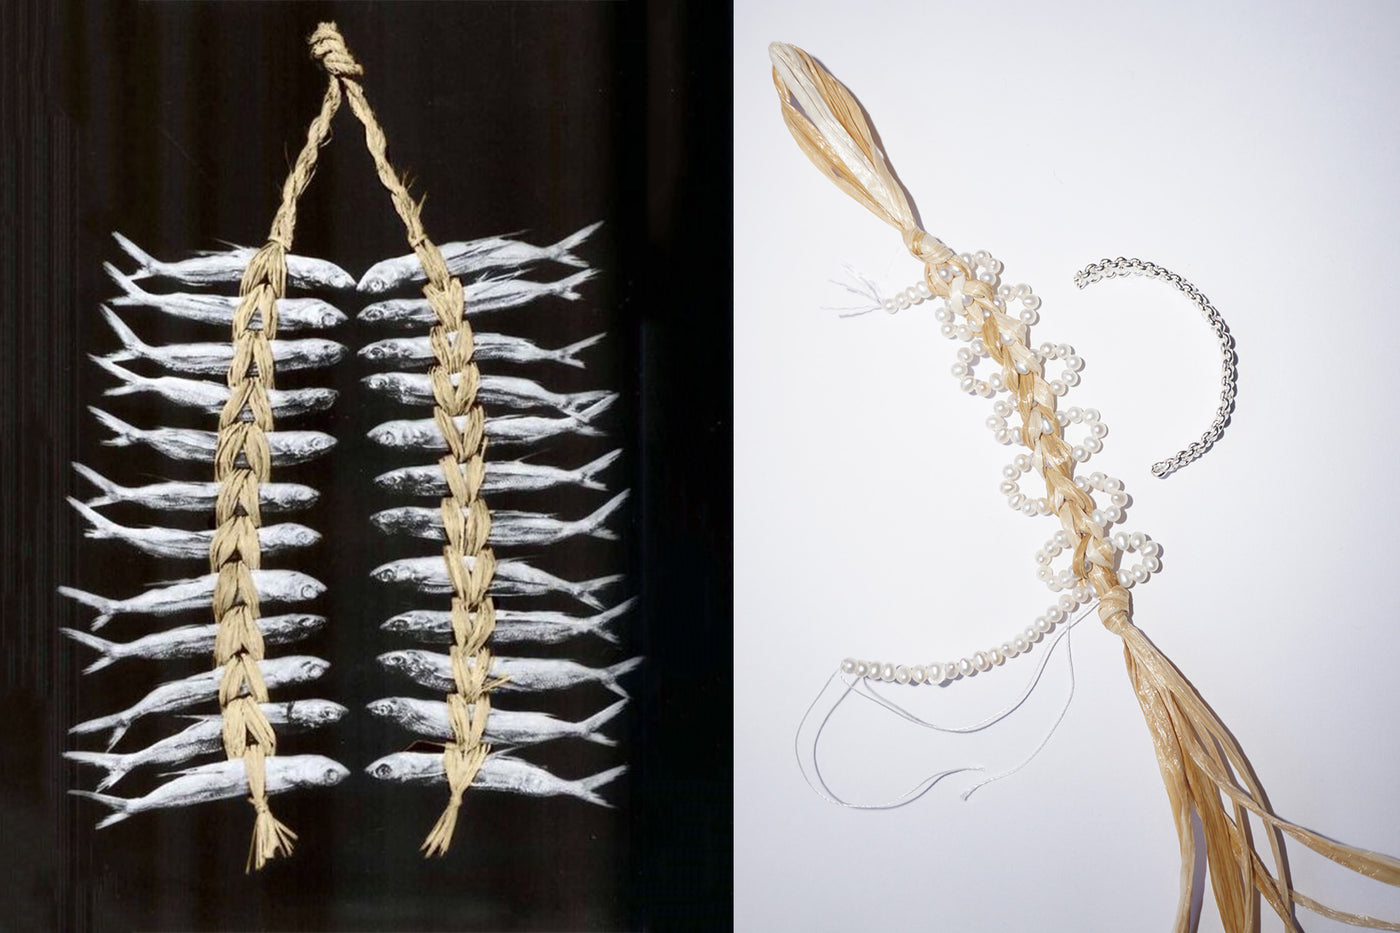 Left: Dry fish raffia packaging / Right: Raffia and pearls bracelet in making